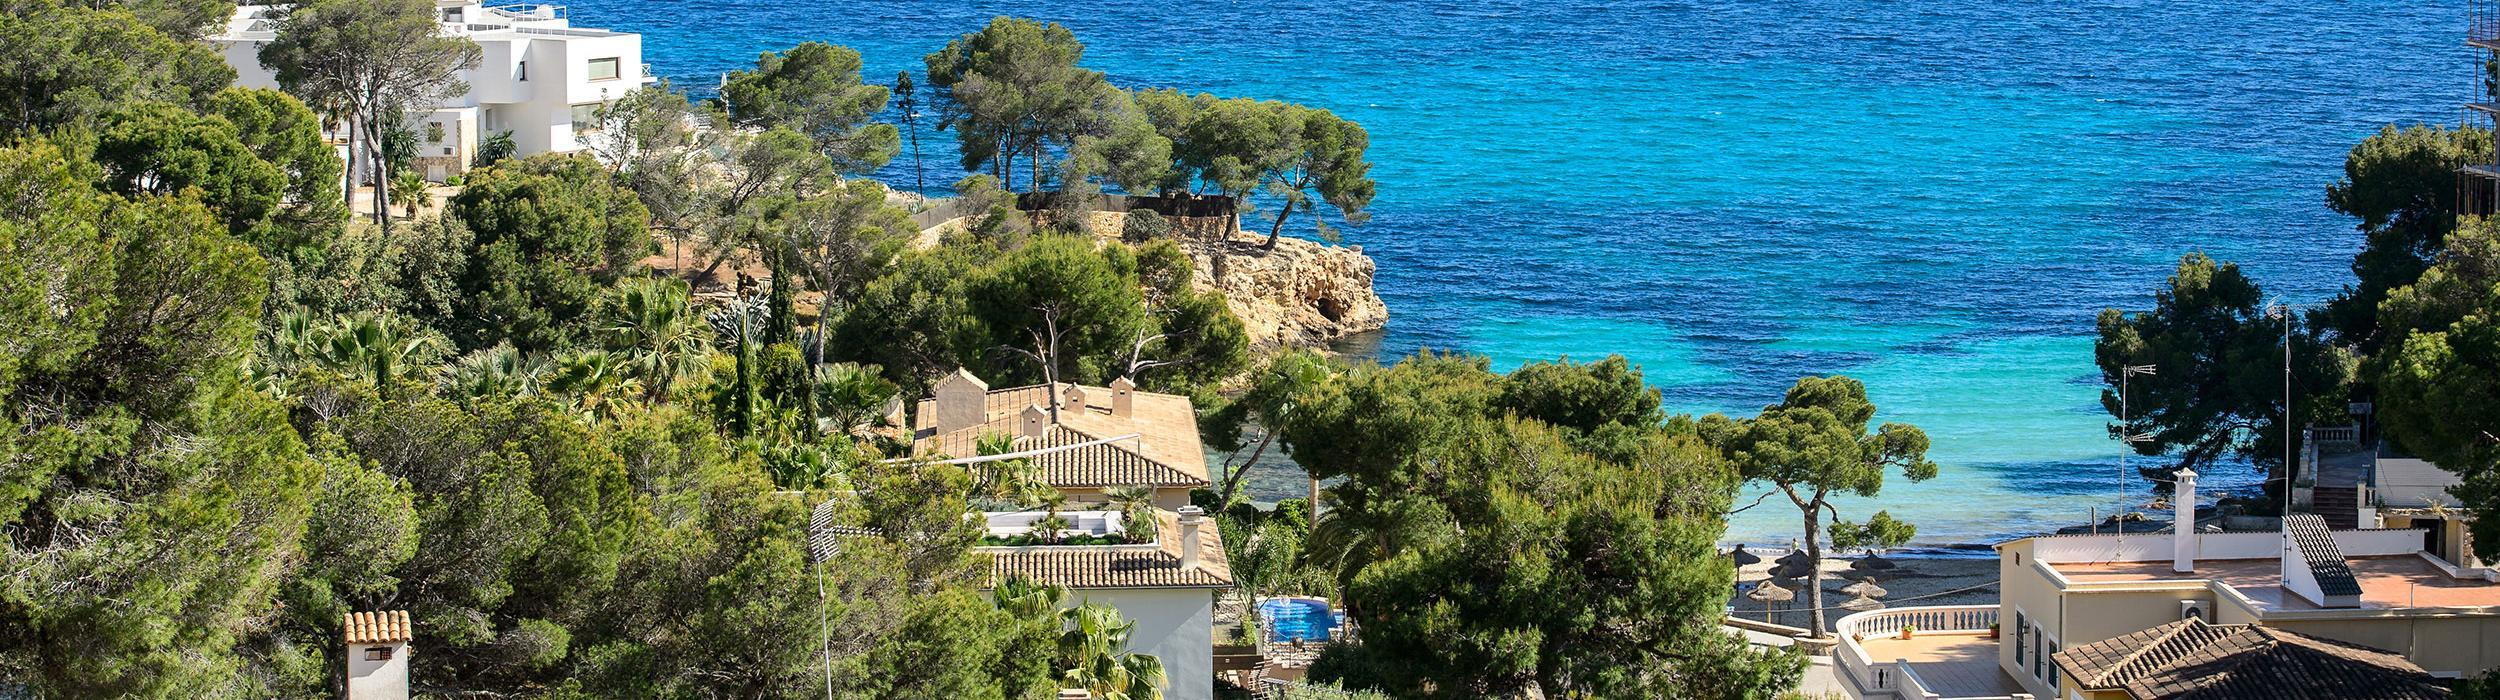 MAJORCA - HOT SAVINGS ON B&B PACKAGE